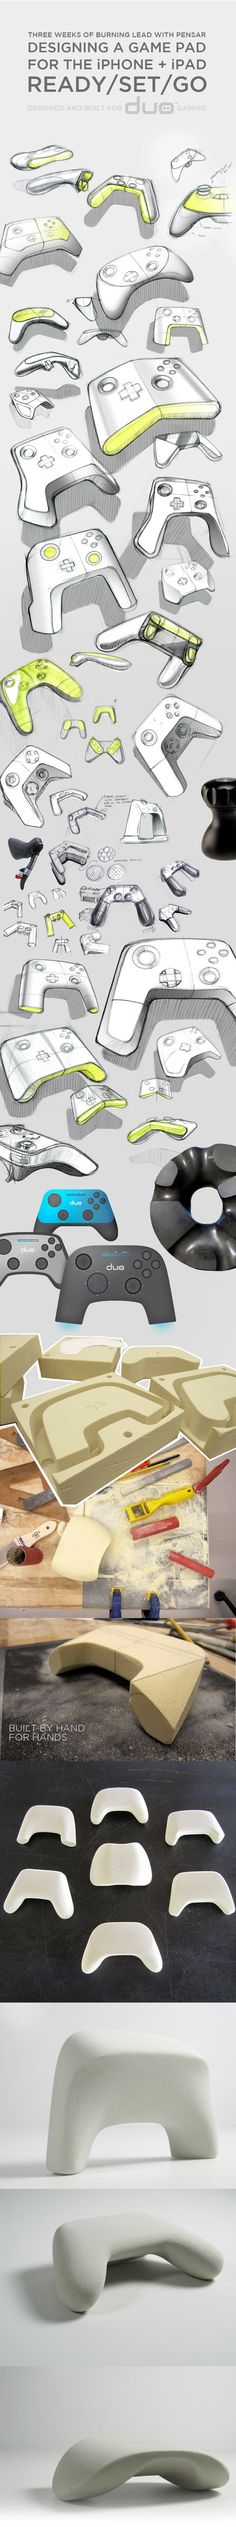 GAMER PRO on Industrial Design sketches, prototypes revealed, blind tests. Shows the process of design that students can see. Career exposure